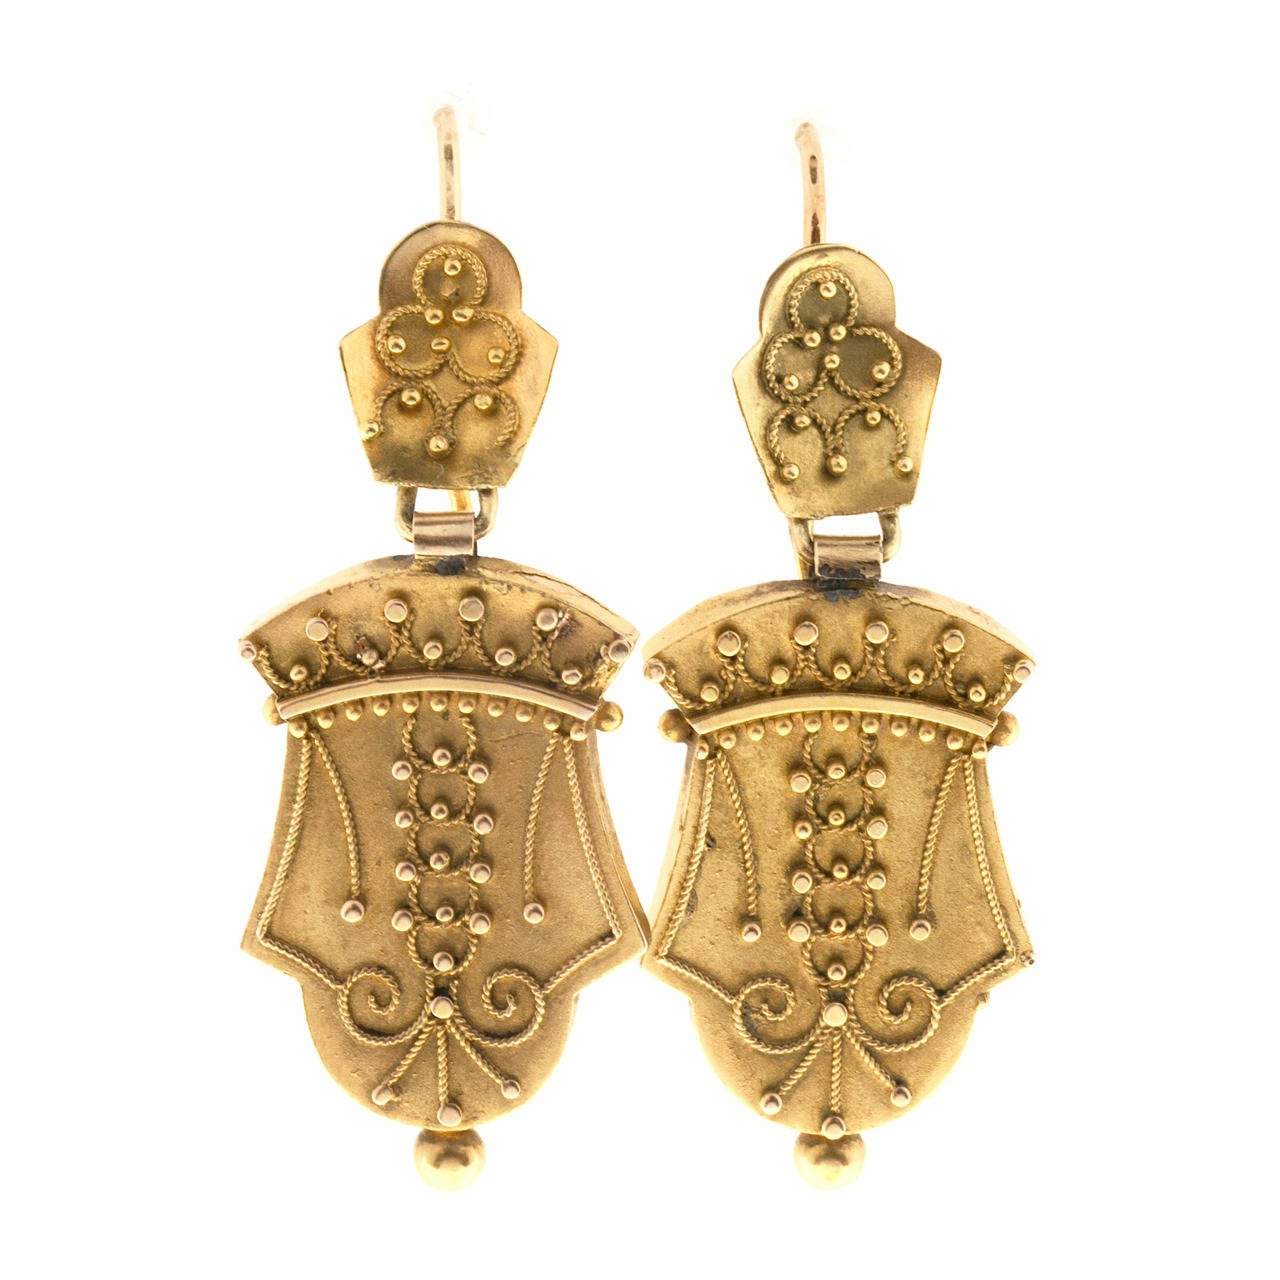 1860s Victorian Gold Dangle Earrings 1